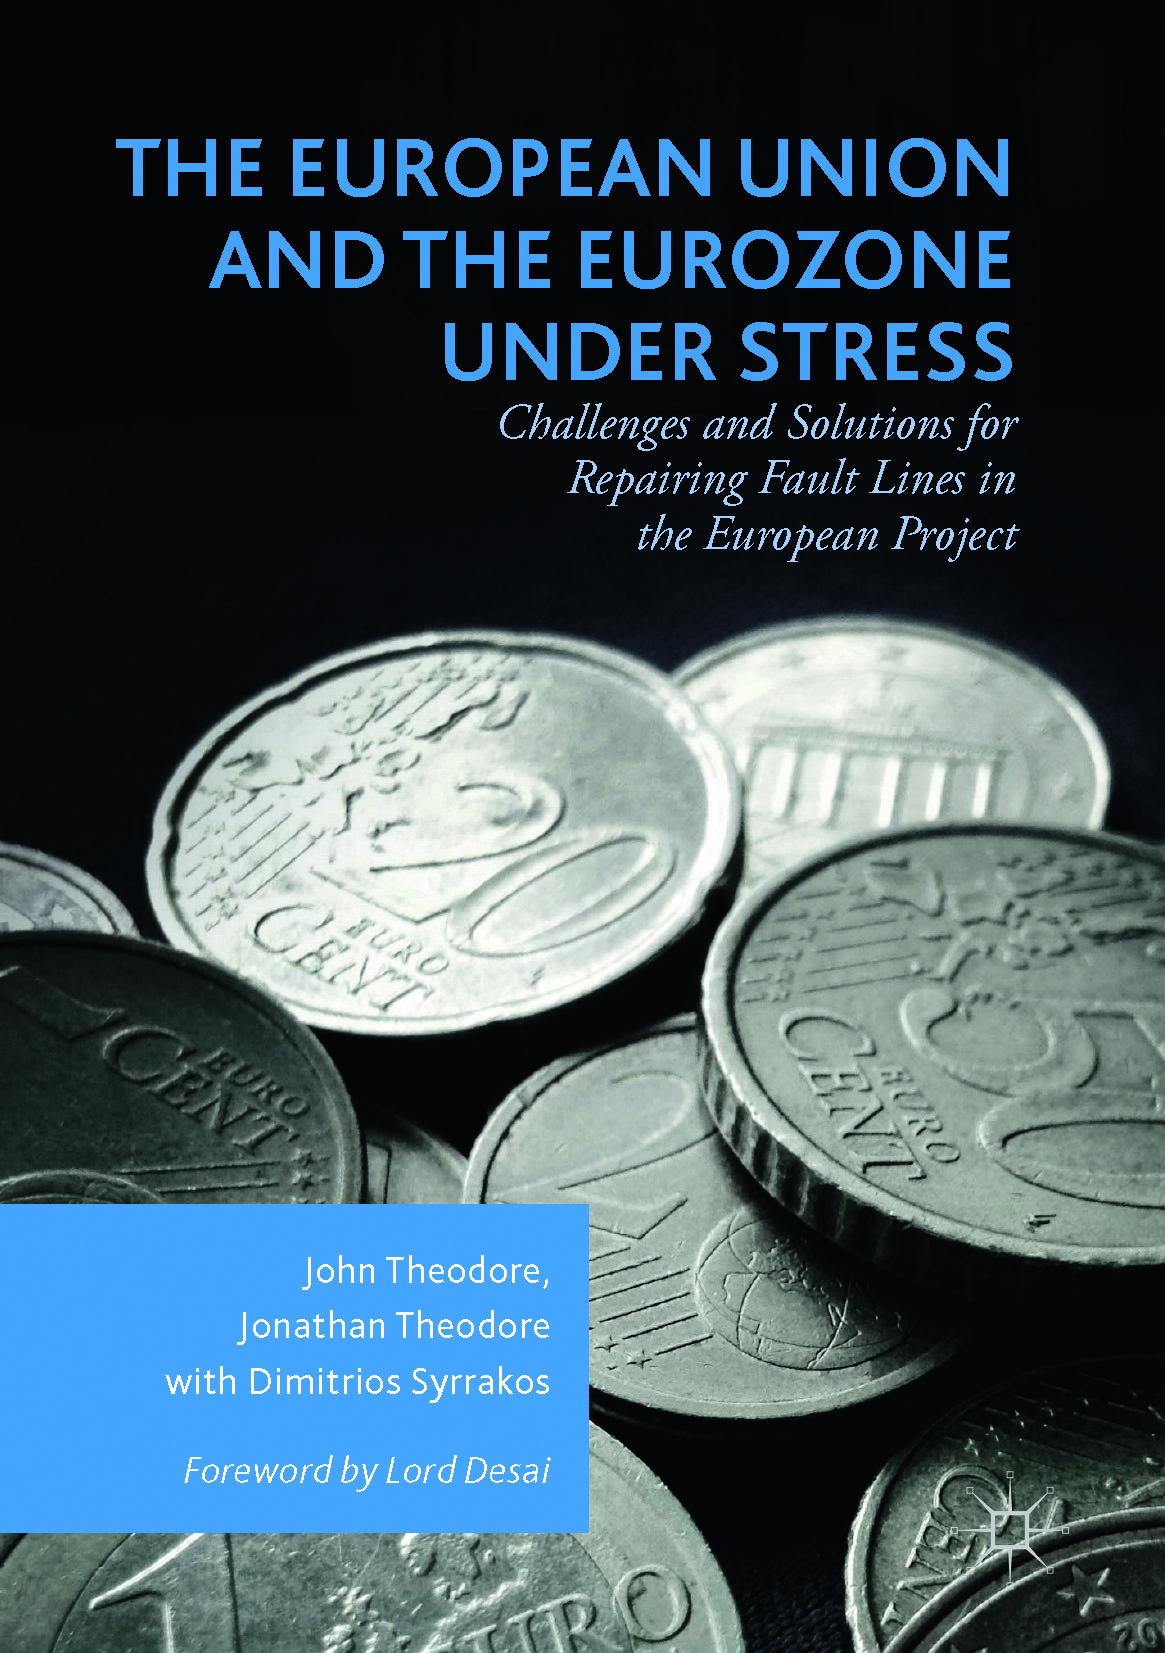 Syrrakos, Dimitrios - The European Union and the Eurozone under Stress, ebook